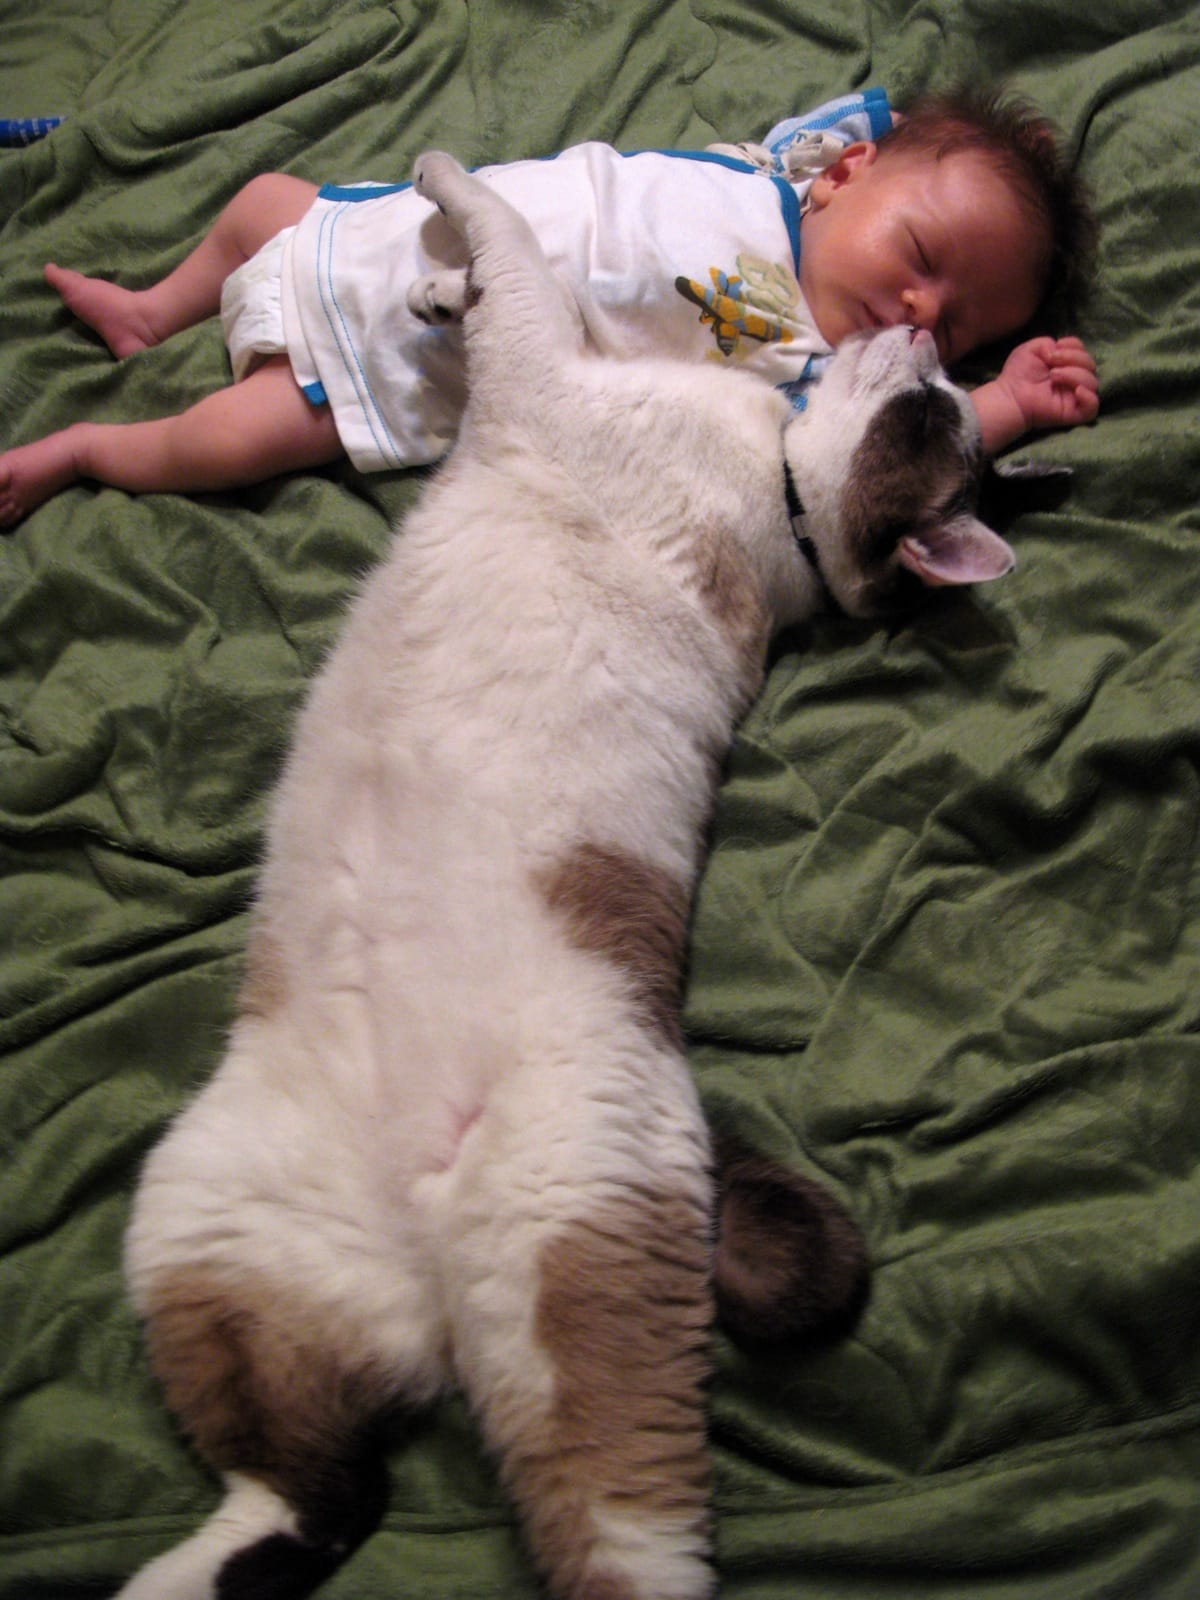 Baby boy sleeping with a cat is so cute